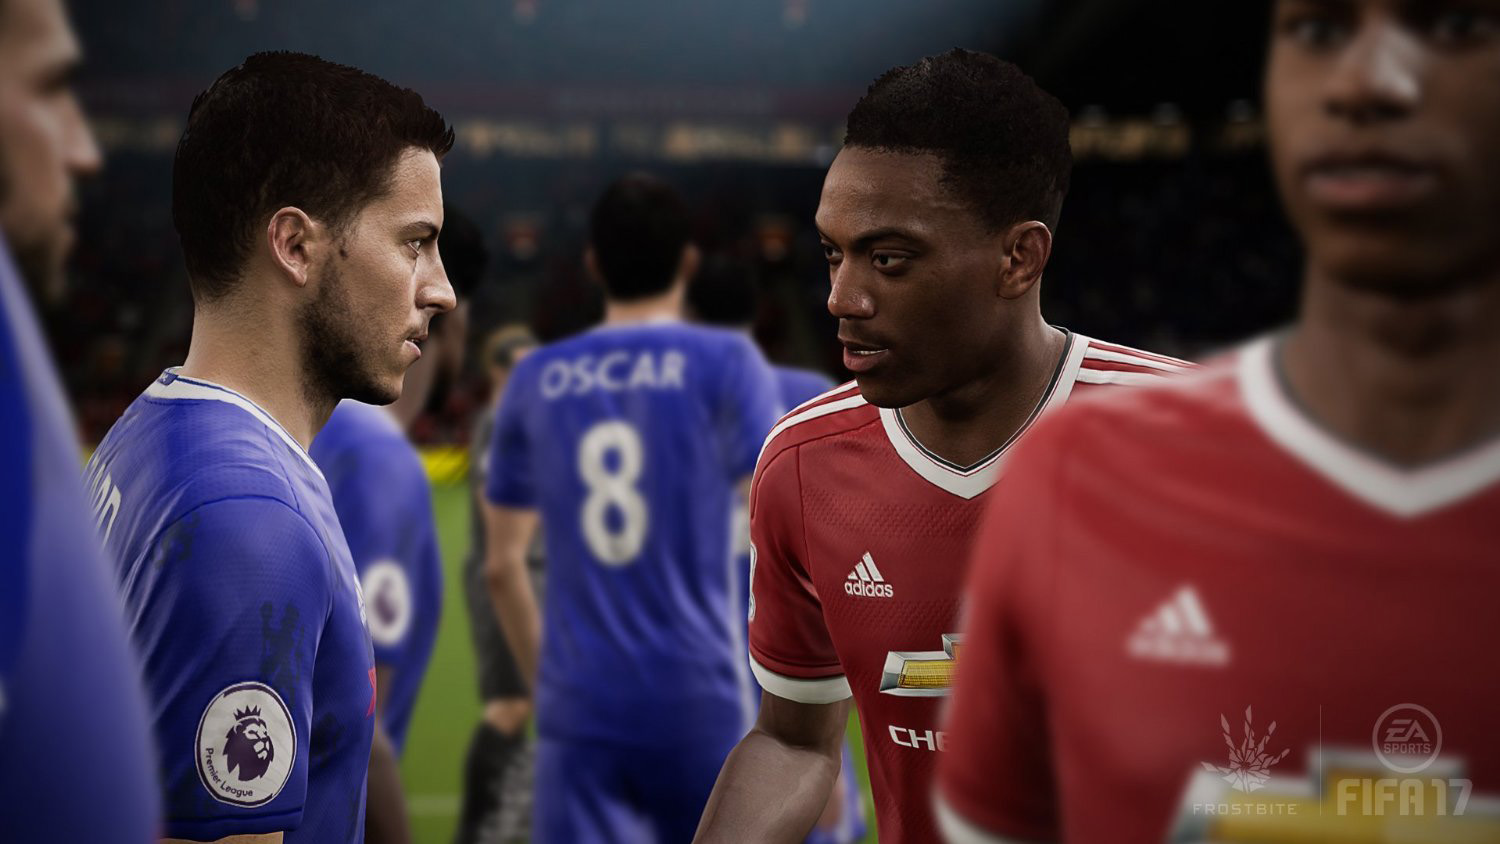 Special Section Fifa 17 For Sale sony Playstation 4, 2016